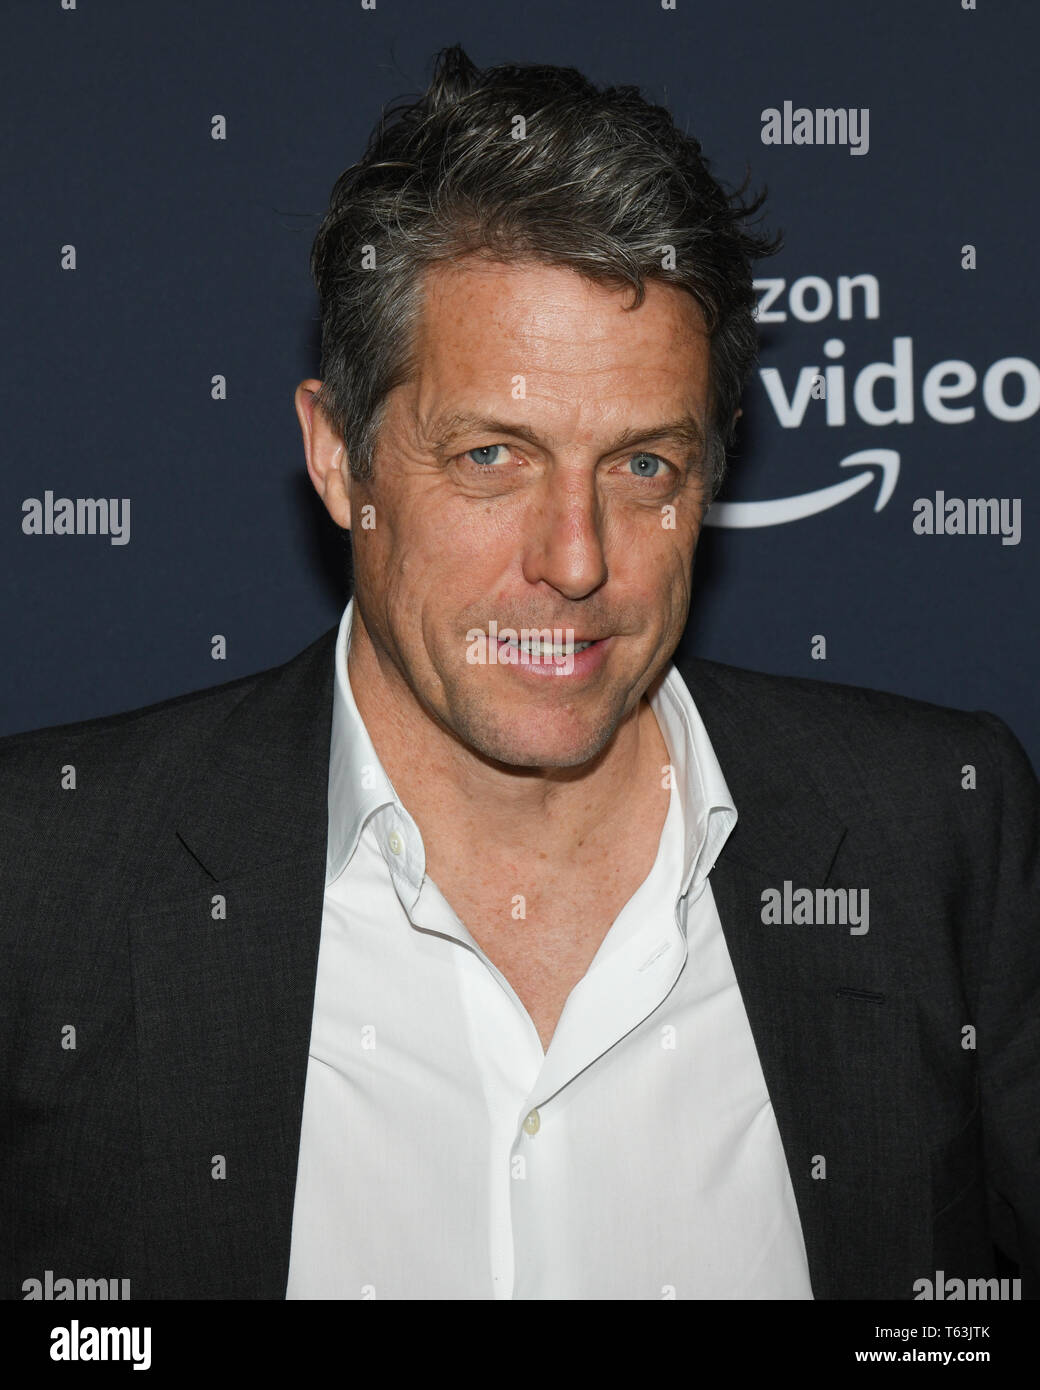 April 28, 2019 - Hollywood, California, USA - HUGH GRANT attends the FYC Screening of Amazon Prime Experience 'A Very British Scandal' Screening at the Hollywood Athletic Club in Hollywood, California. (Credit Image: © Billy Bennight/ZUMA Wire) - Stock Image